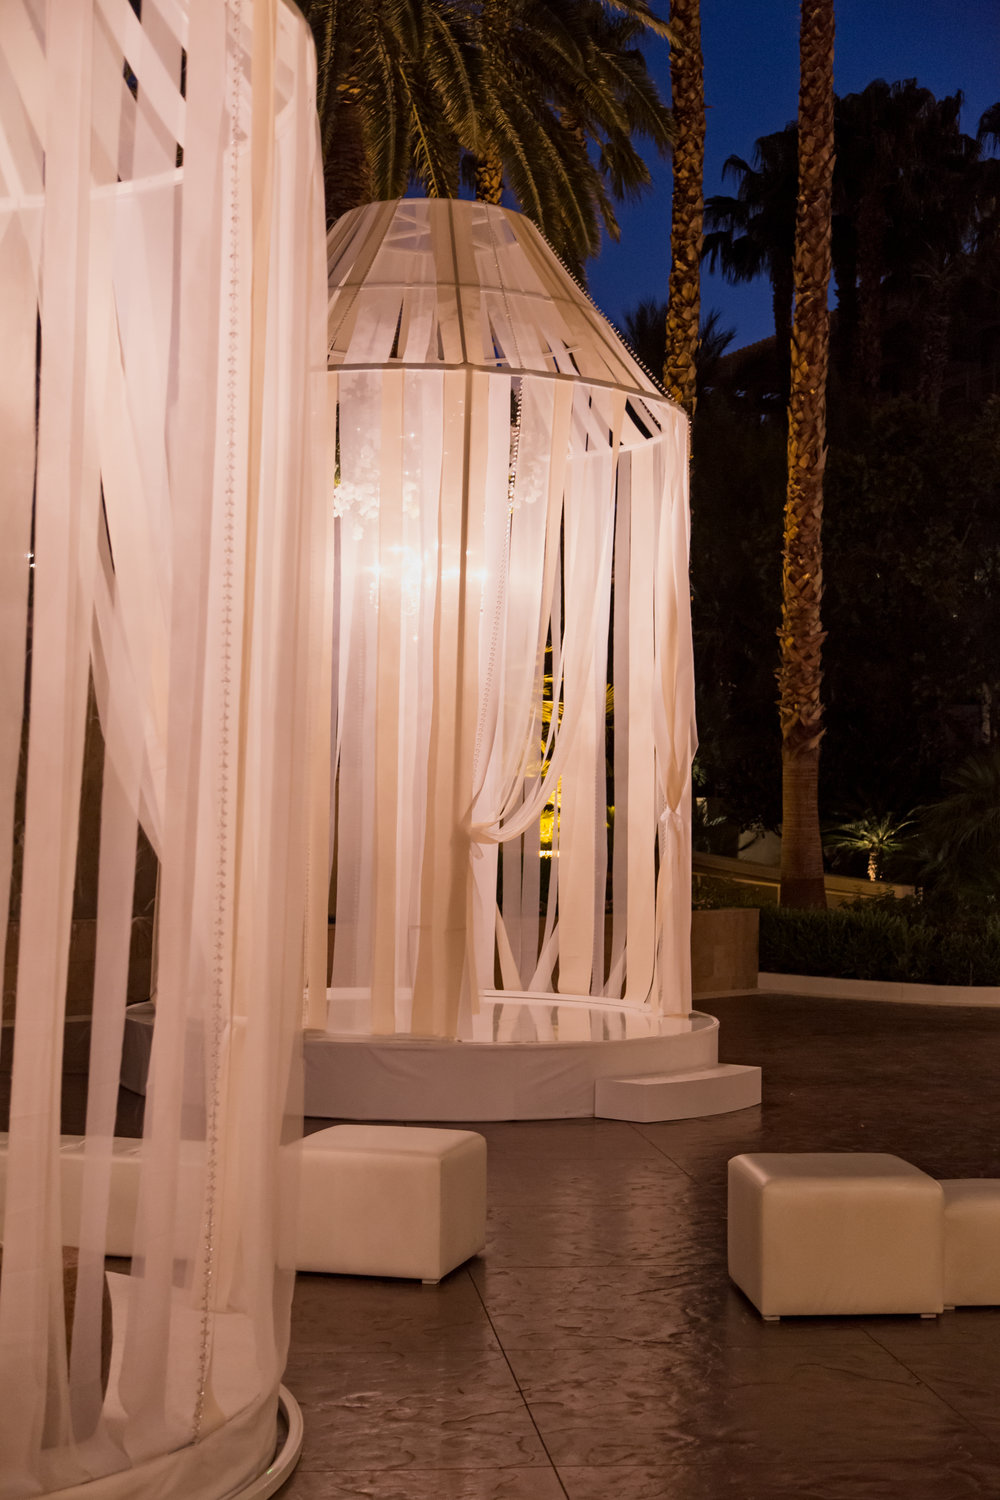 Oversized birdcages lit at night.  Destination Wedding Planner  Andrea Eppolito  · Photos by  Adam Frazier Photography  · Floral and Decor by  Destinations by Design  ·  Lighting by  LED Unplugged  · Venue  · Invitations  Ceci New York   ·  Menus by  Alligator Soup